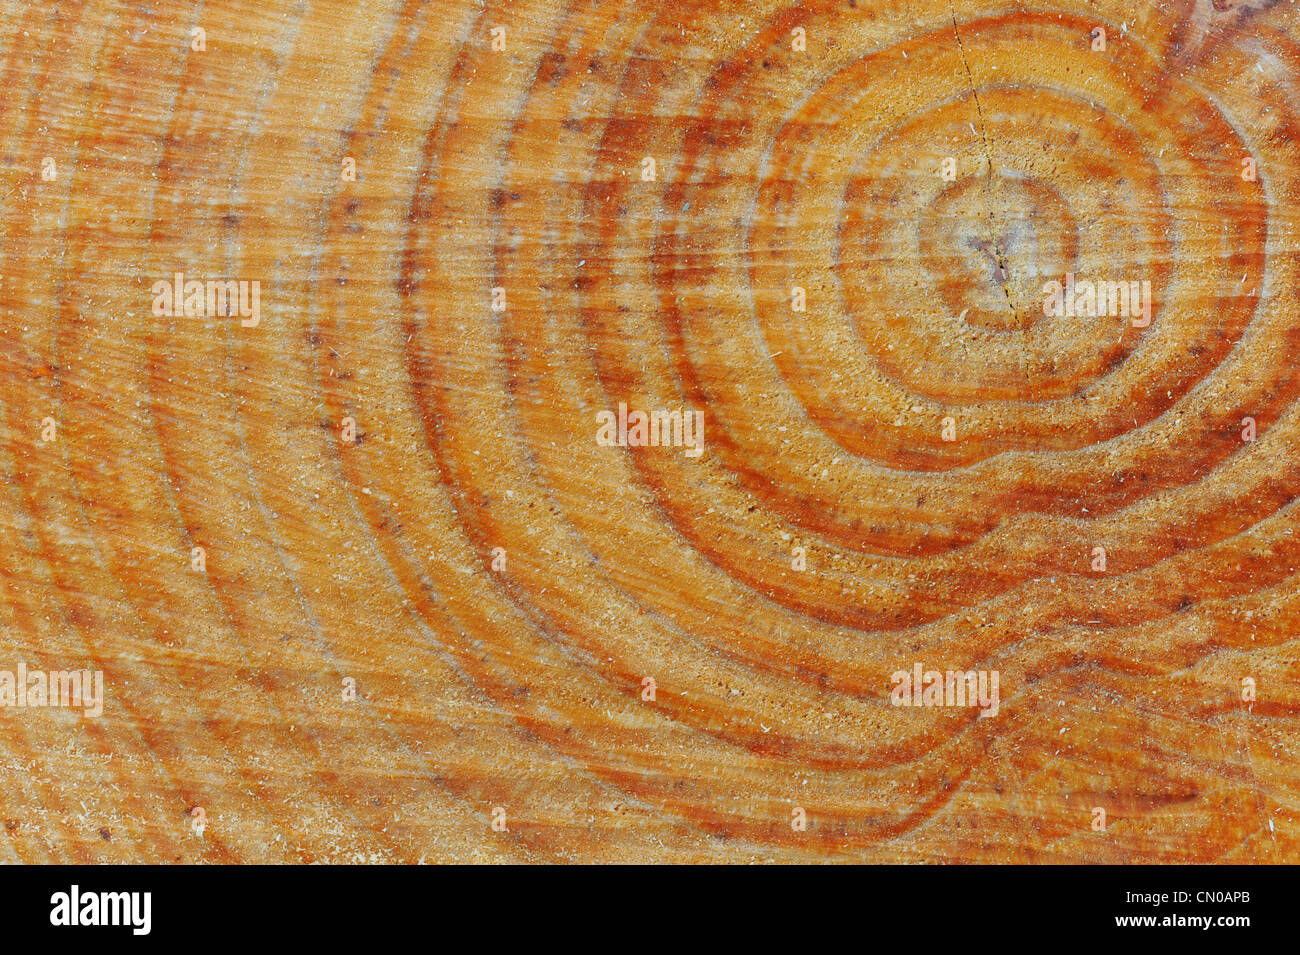 Außenwand Dekoration Metall Gesägtes Holz Stockfotos And Gesägtes Holz Bilder Alamy